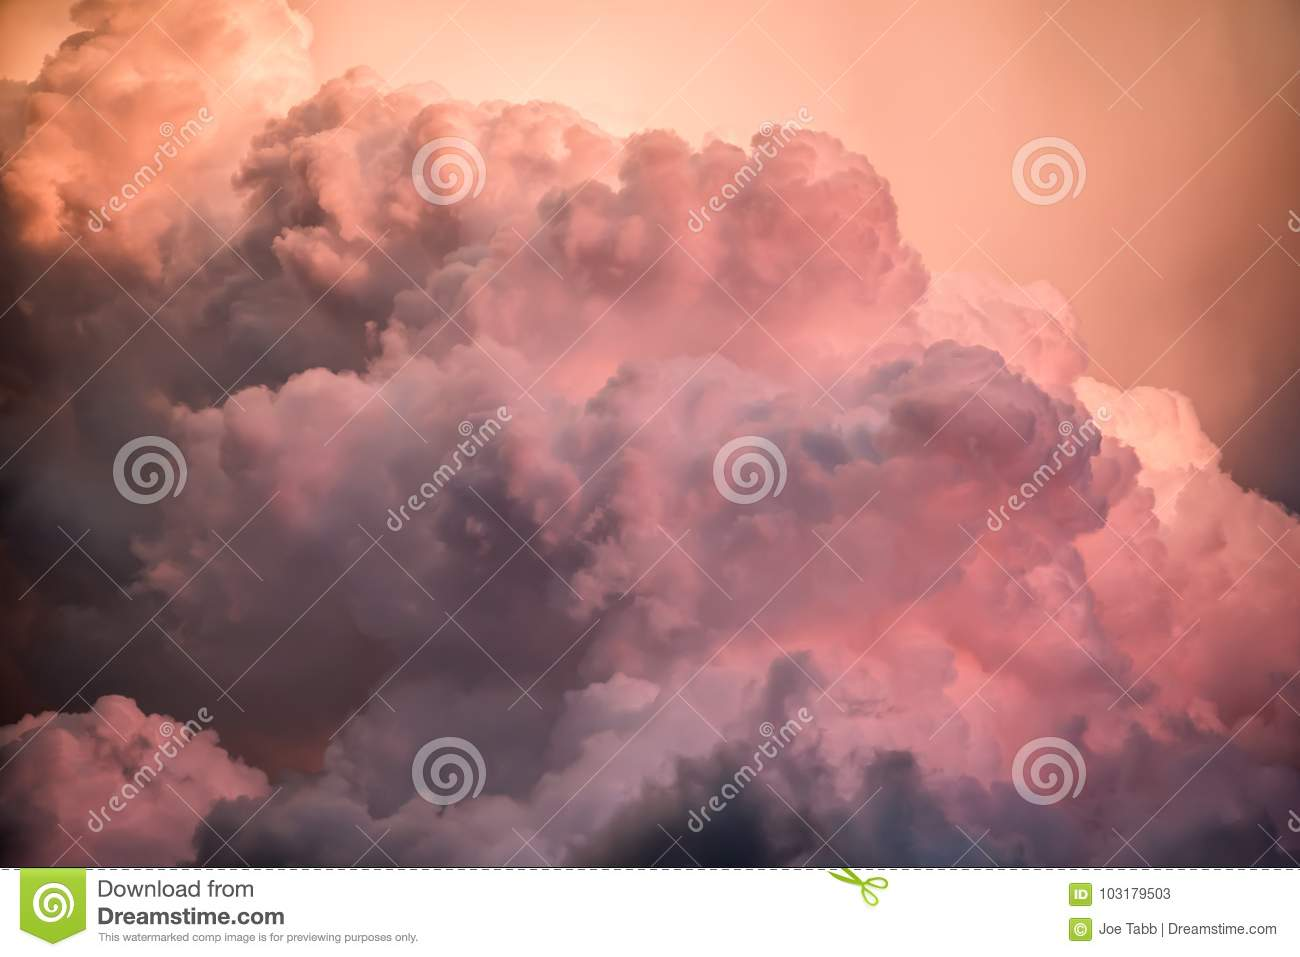 Clouds at susnet